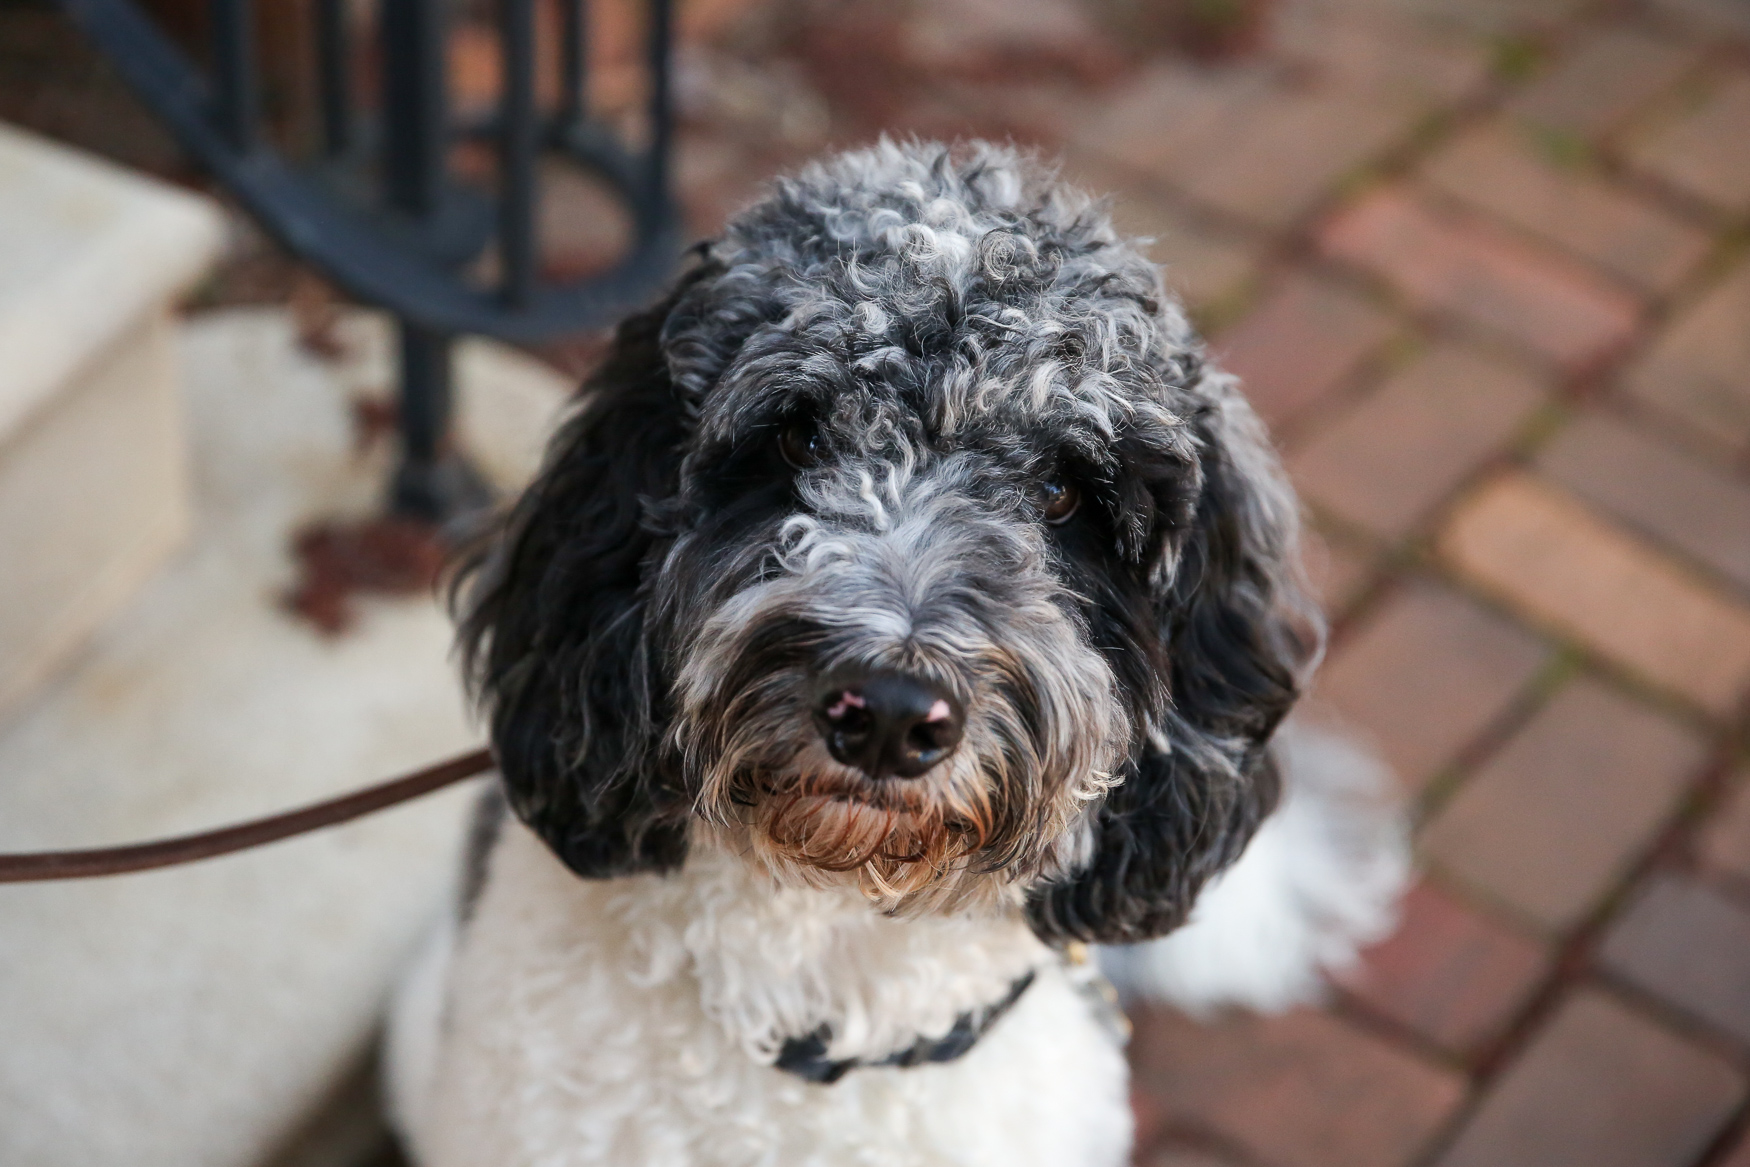 "Meet Scrummer, a 15-month-old Cockapoo. He came home to be with his family at just 8 weeks old, and came from Indiana.{&nbsp;}He LOVES his rugby ball (his all time favorite toy) and hiking, so the fam tries to get out to the mountains twice a month. Scrummer enjoys the freedom of the trail and carries his backpack with his water, kibble, treats and first aid kit. When he sees his pack come out he gets so excited because he knows that means an adventure is coming. On the flip side, he HATES the car. He gets super anxious and drools everywhere. One of his family's favorite memories with Scrummer was on a recent hike when his momma was having a particularly stressful week. ""When we reached the summit of our hike I sat down to take it all in,"" said Scrummer's mom. ""Scrummer came and sat right next to me, leaned up against me, and just stayed like that for 15 minutes. It was something simple, but so sweet."" If you're interested in having your pup featured, drop us a line at aandrade@dcrefined.com, but we do have quite the waiting list right now so we appreciate your patience! (Image: Amanda Andrade-Rhoades/DC Refined)<p></p>"